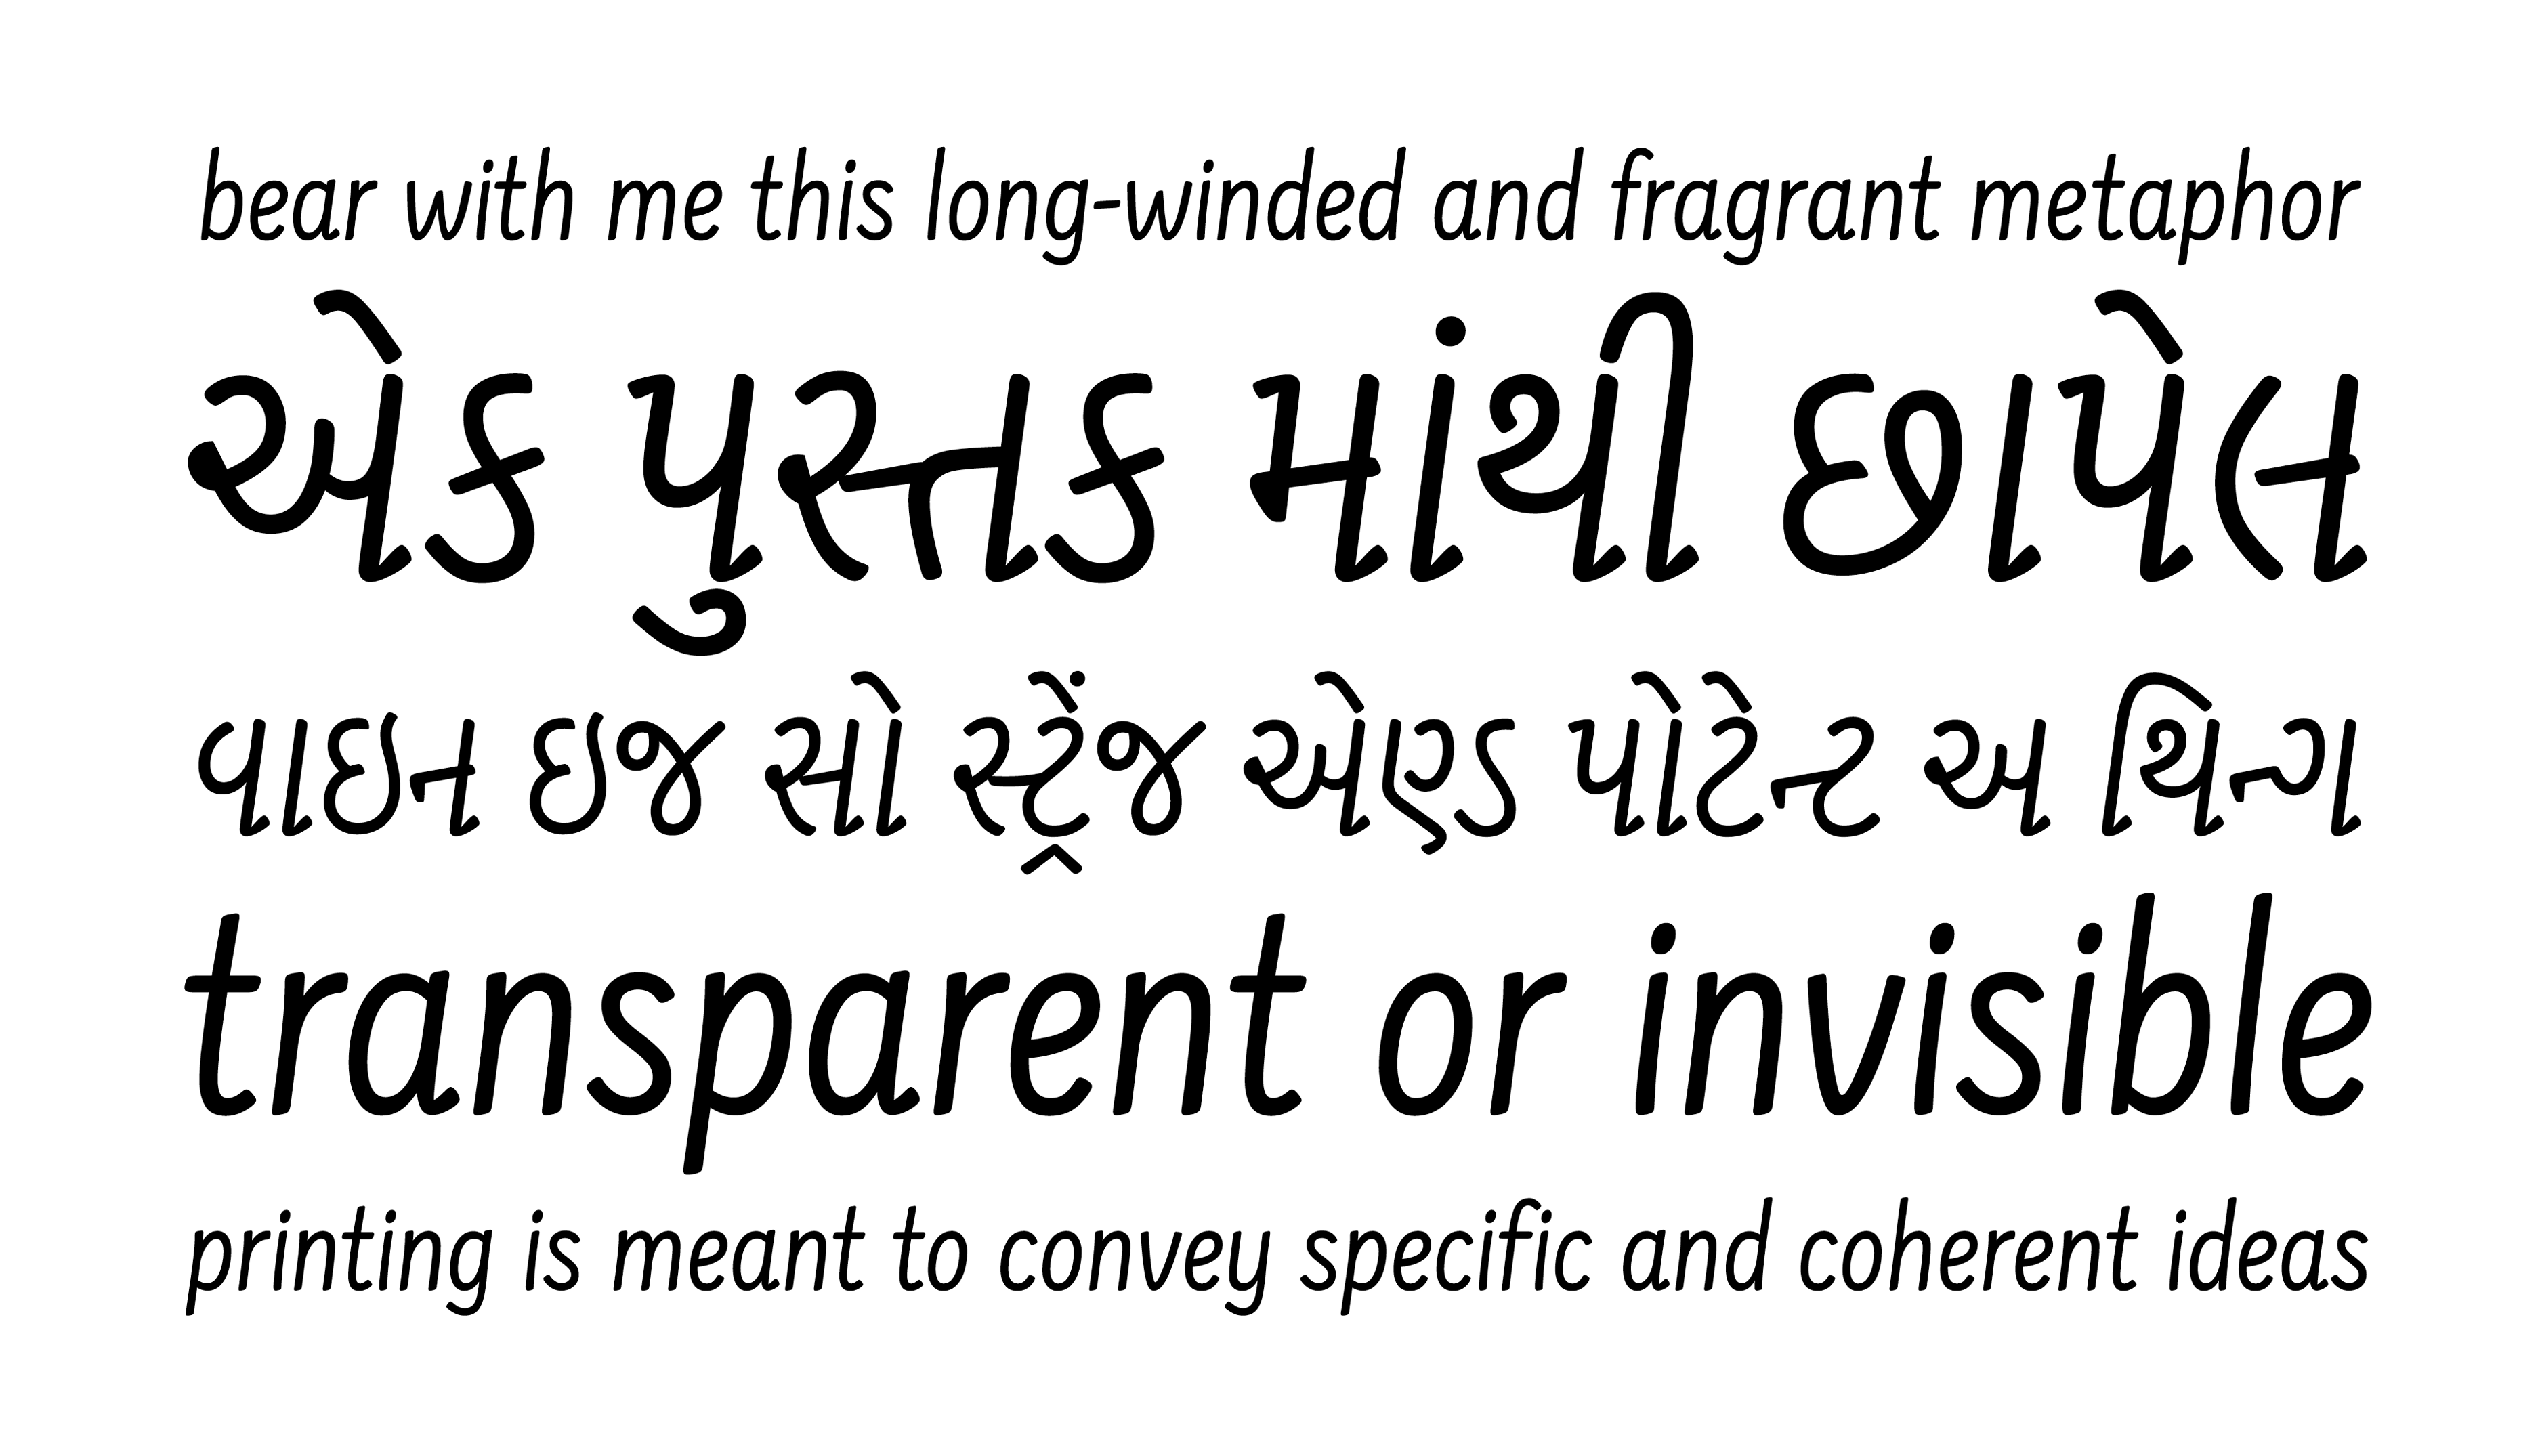 Farsan Above One Of Her Multi Script Typefaces Has A Welcoming Feel With Many Potential Applications This Monoline Sans Serif Narrow Body